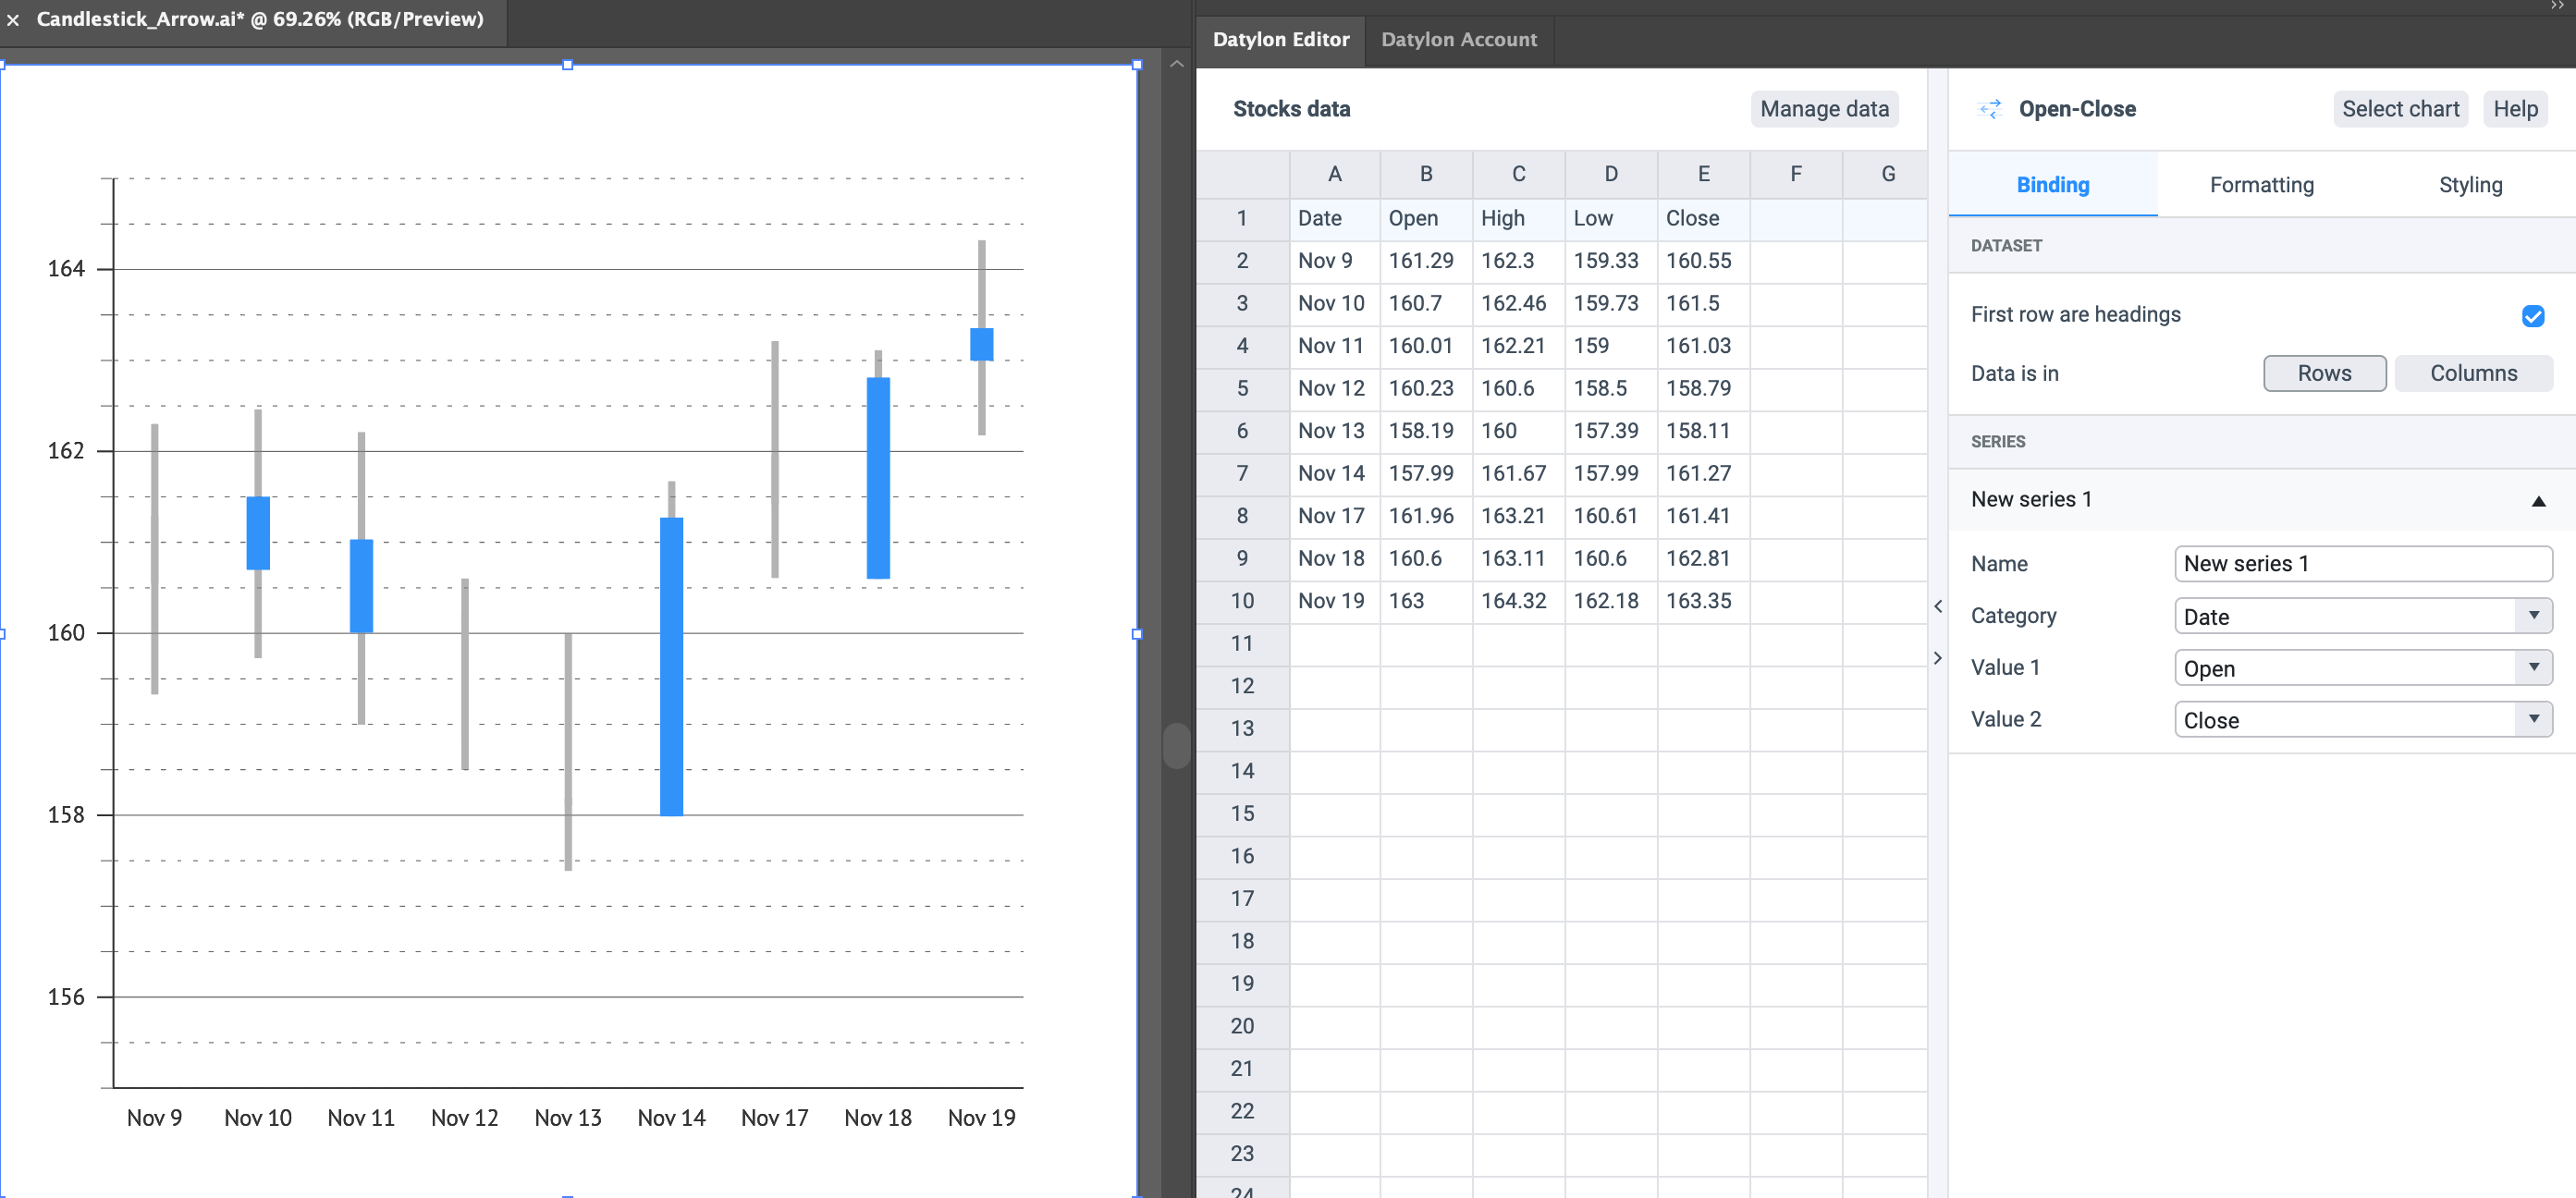 helpcenter-how-to-create-a-candlestick-chart-with-datylon-Step 9